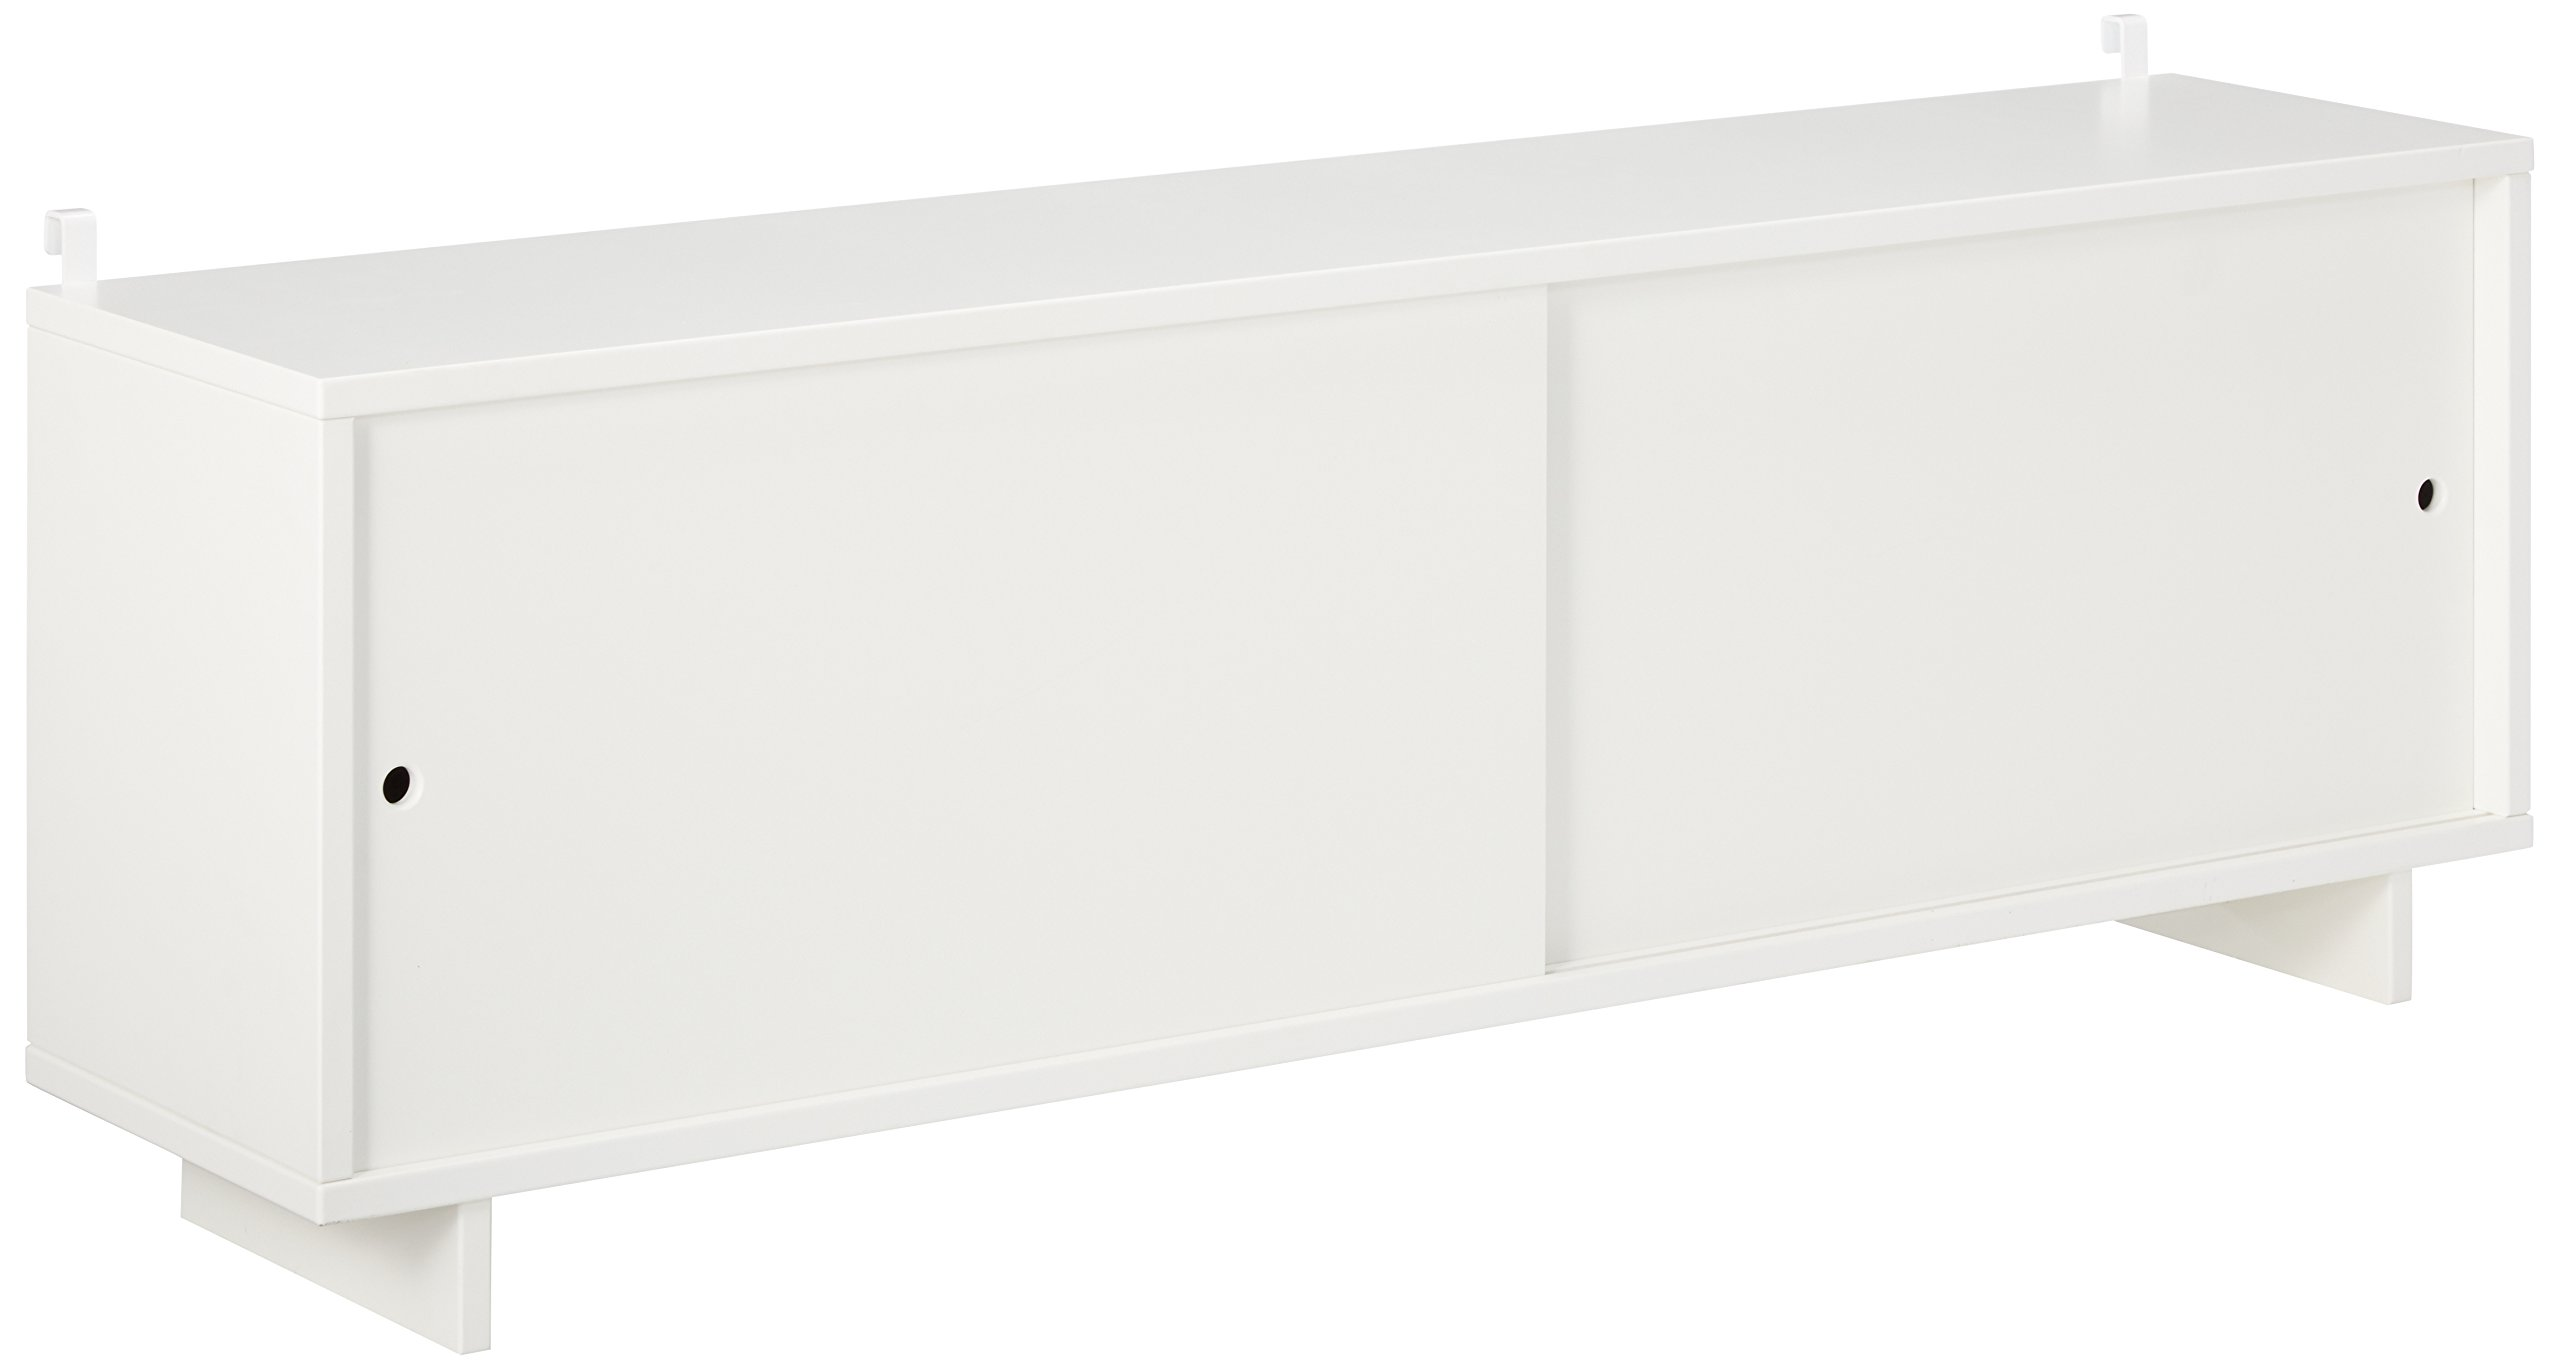 Oeuf Perch Full Size Console, White by Oeuf